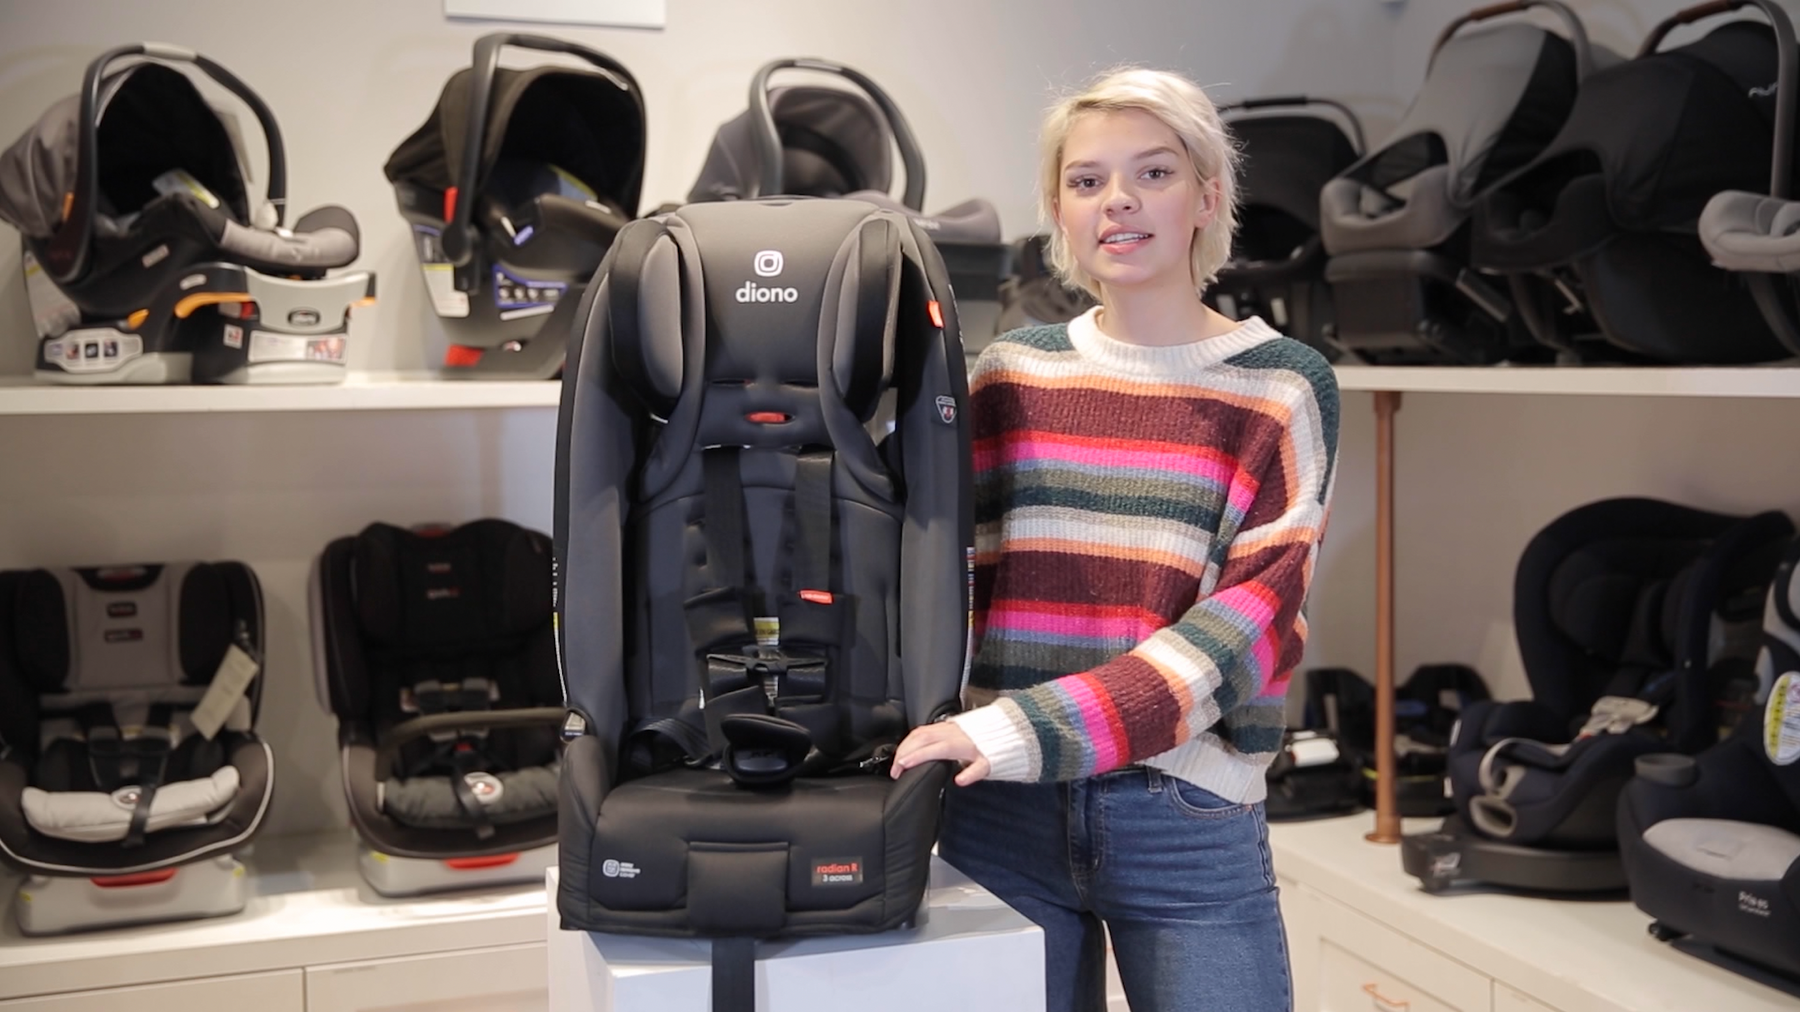 Video: Diono Radian 3RXT Convertible Car Seat